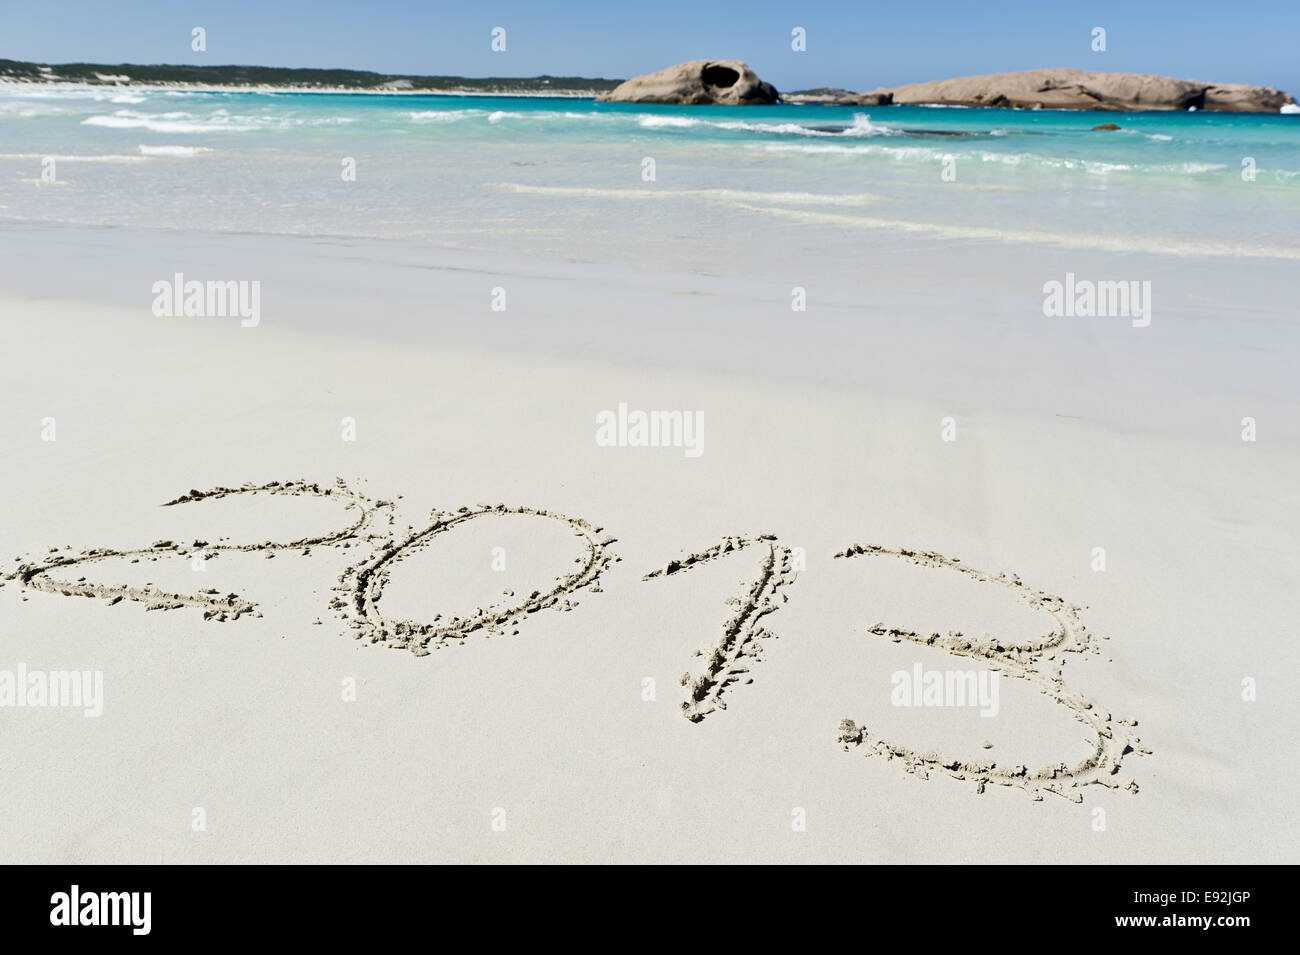 2013 written in the sand - Stock Image